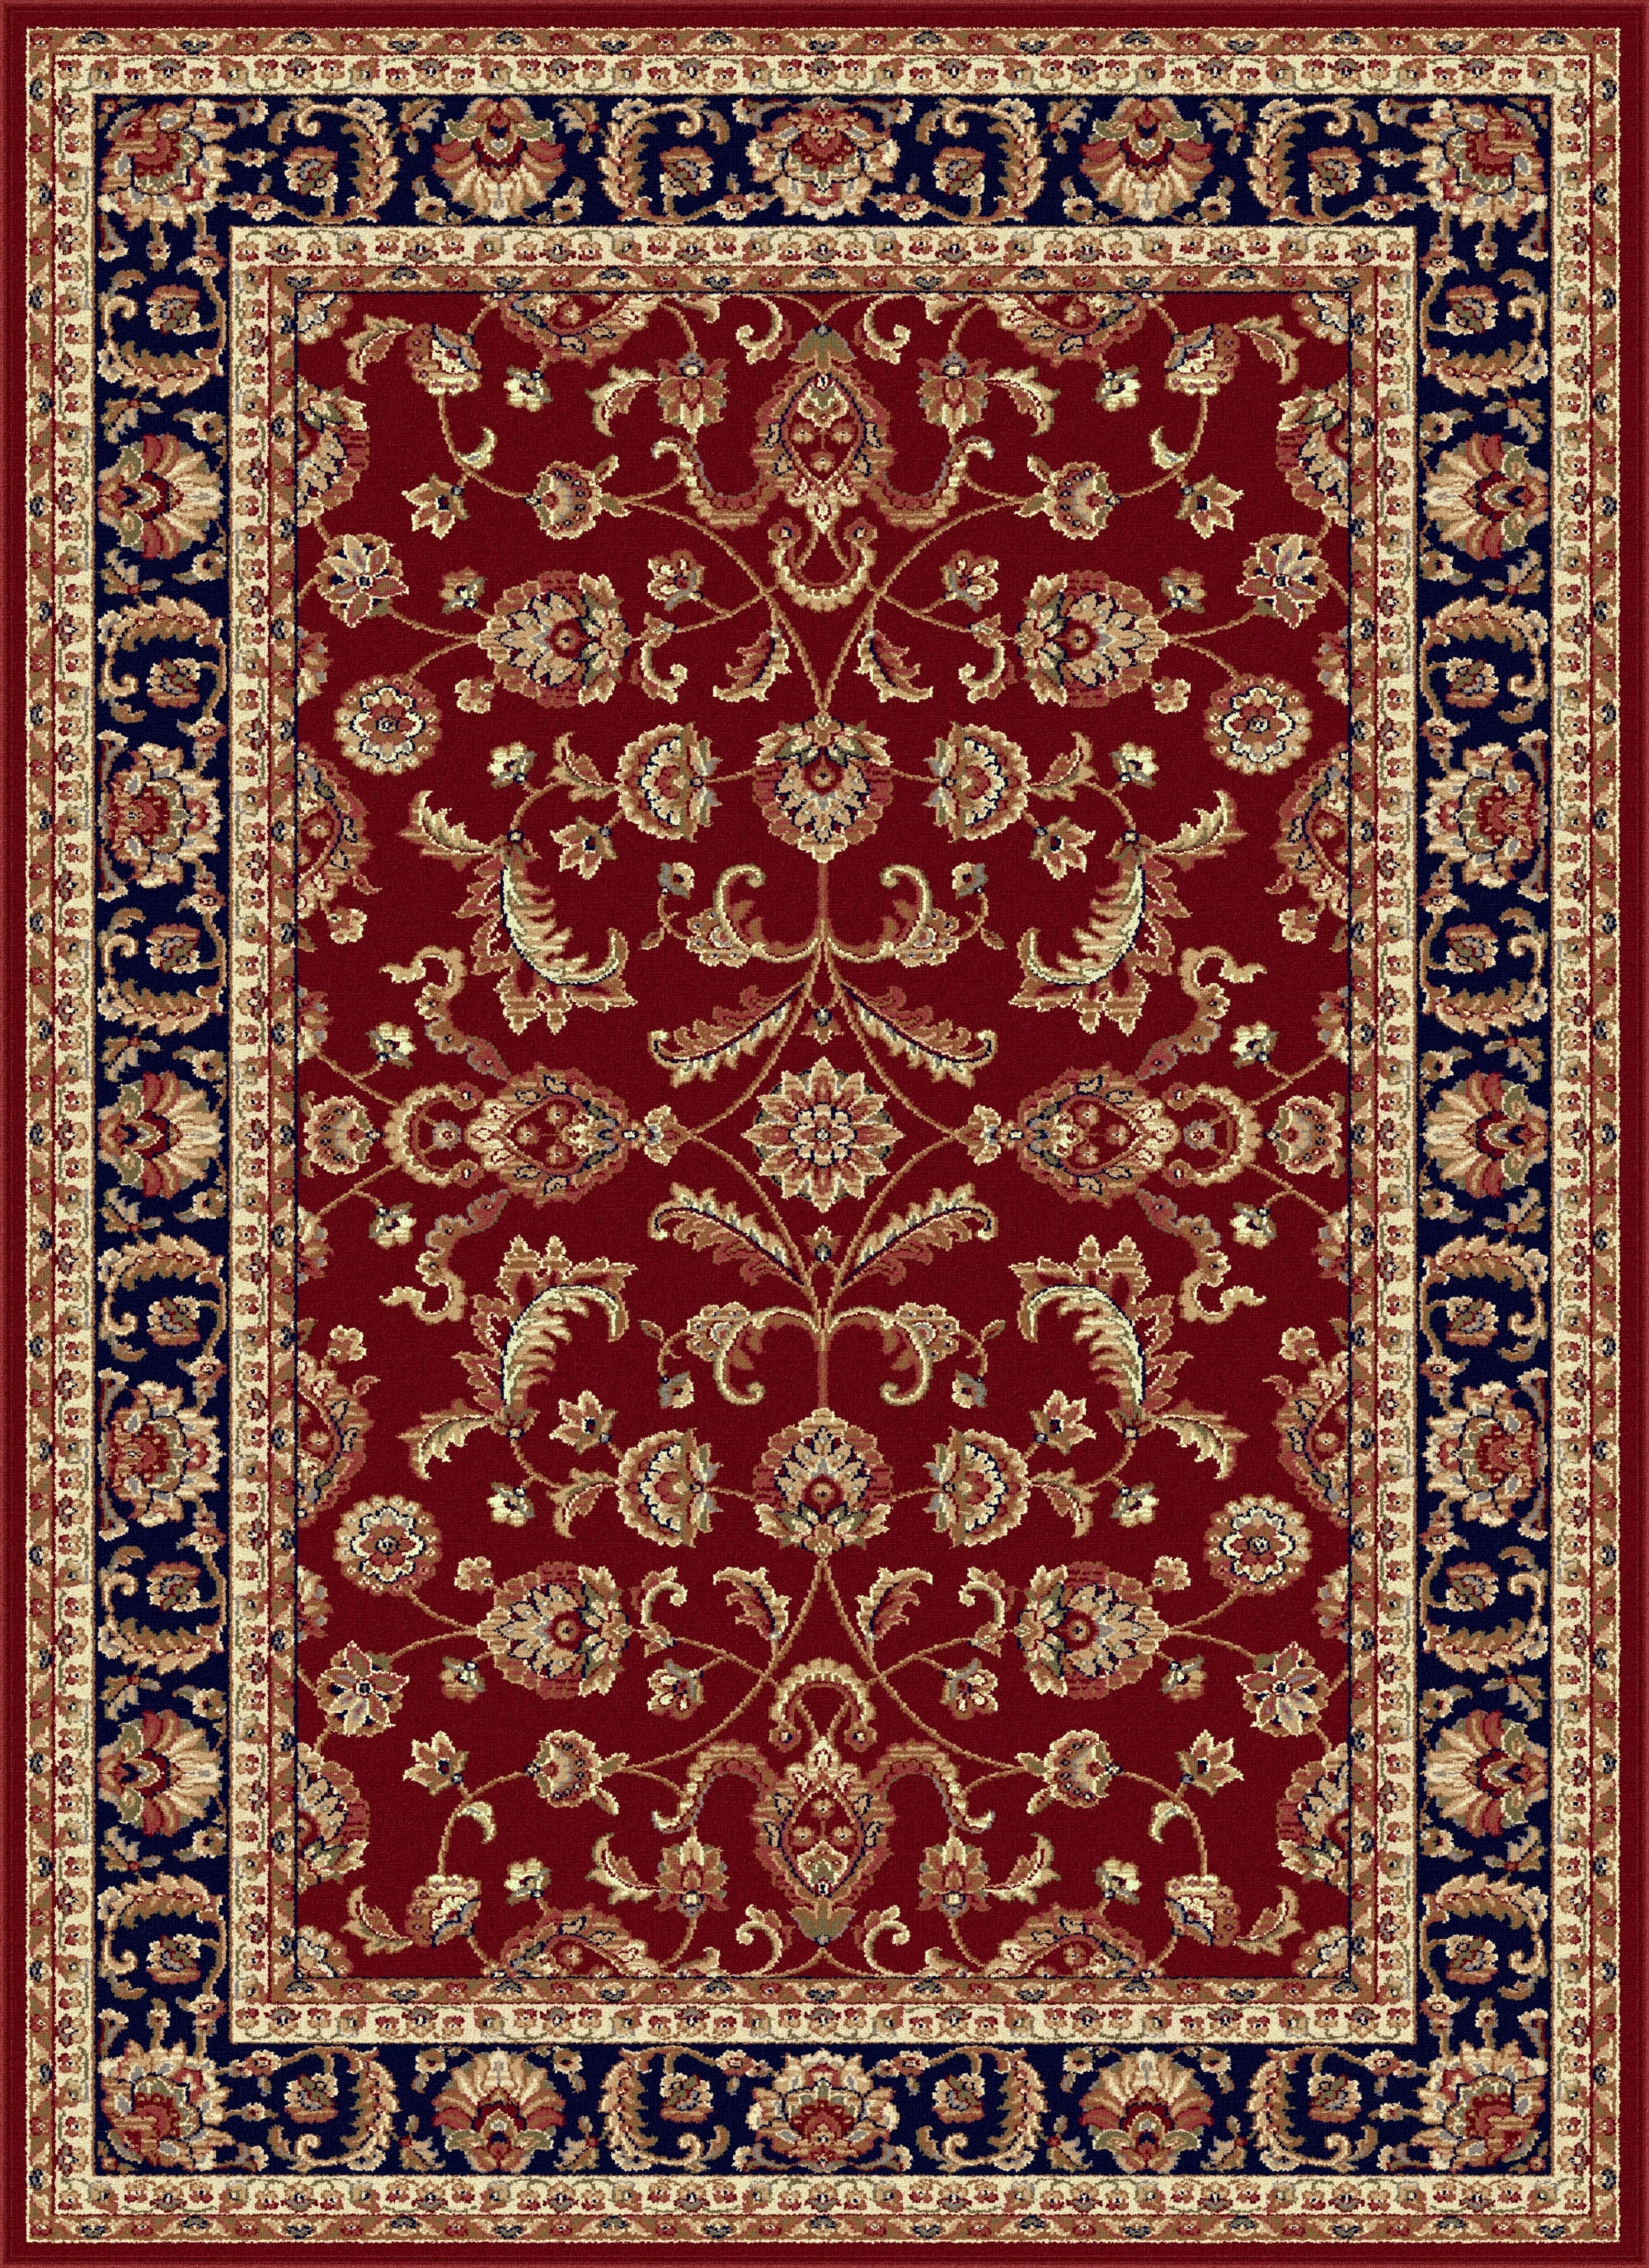 Sensation 4790 Transitional Area Rug (8'9 x 12'3)